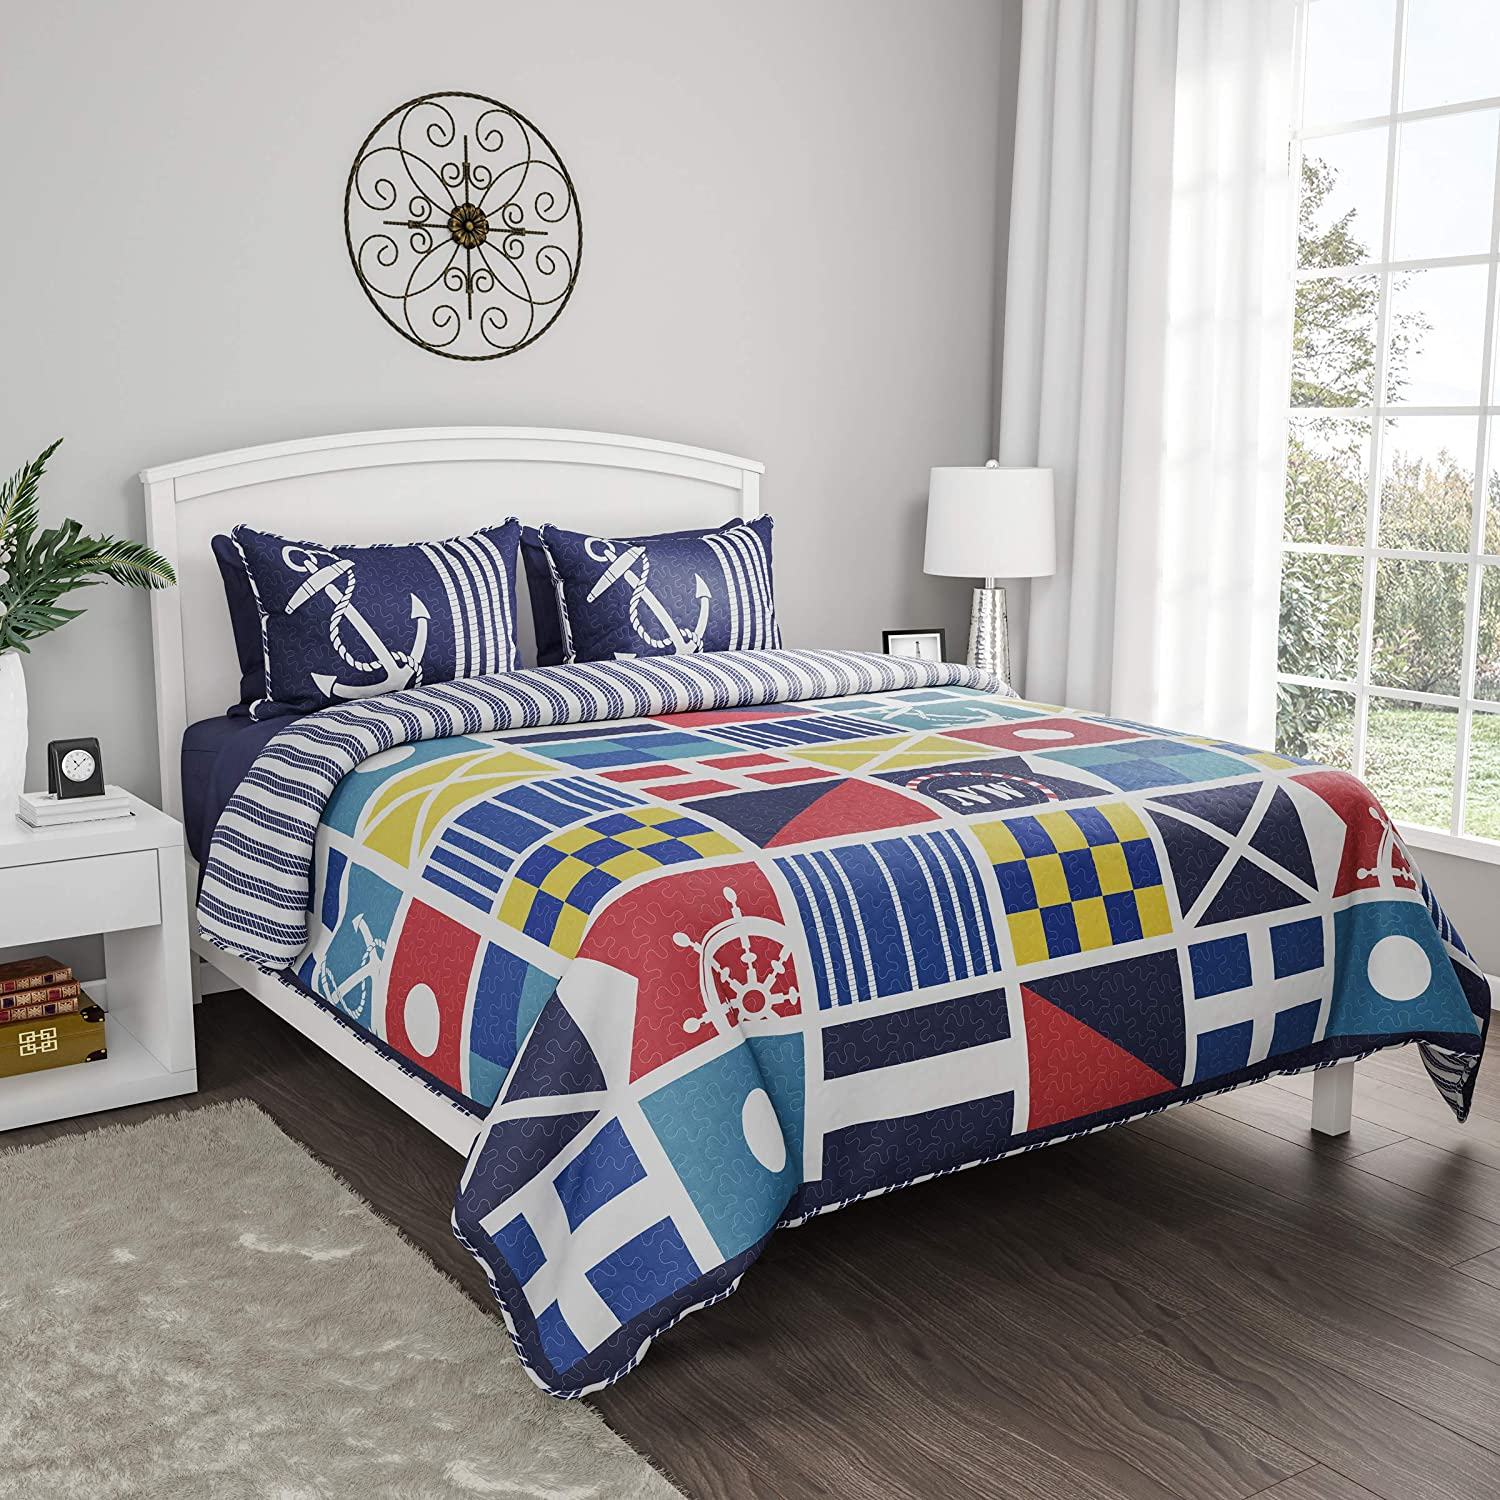 Lavish Home Collection Quilt Bedspread Set with Exclusive Mariner Design- 3 Piece Full/Queen Set With 2 Shams, Nautical Coastal Theme, Reversible, Hypoallergenic